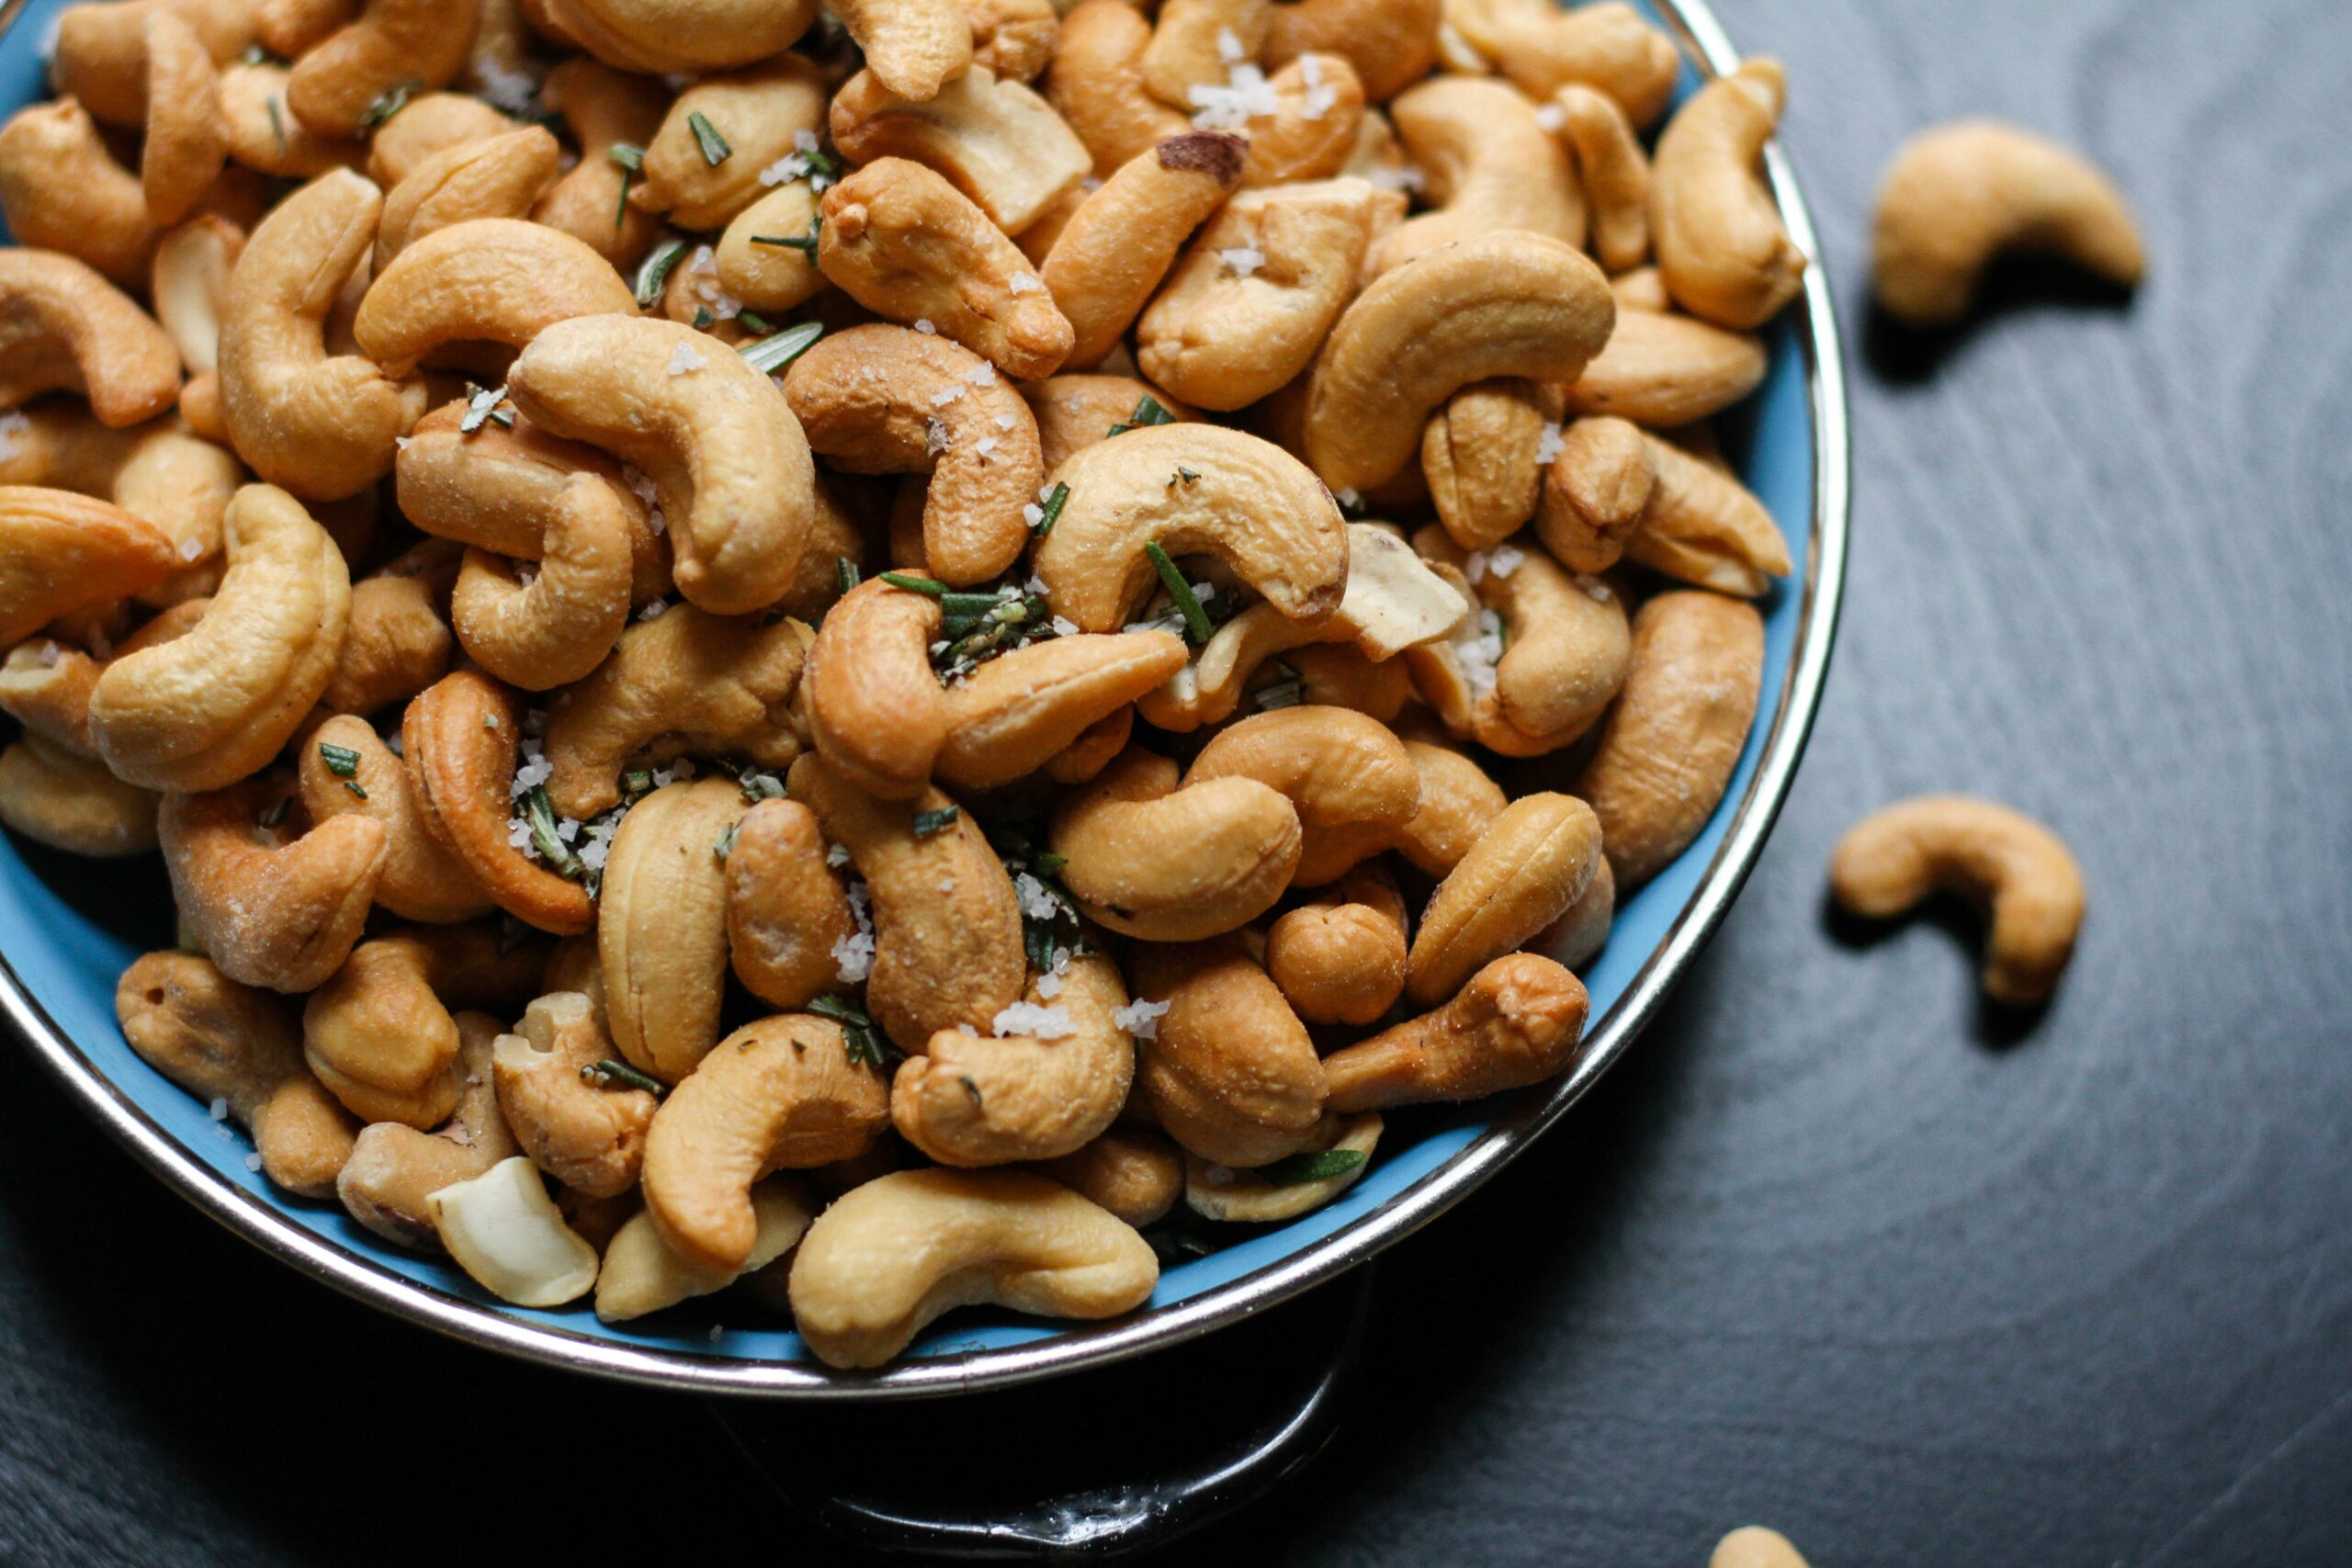 Cashews as Antidepressants (Facts and Benefits)